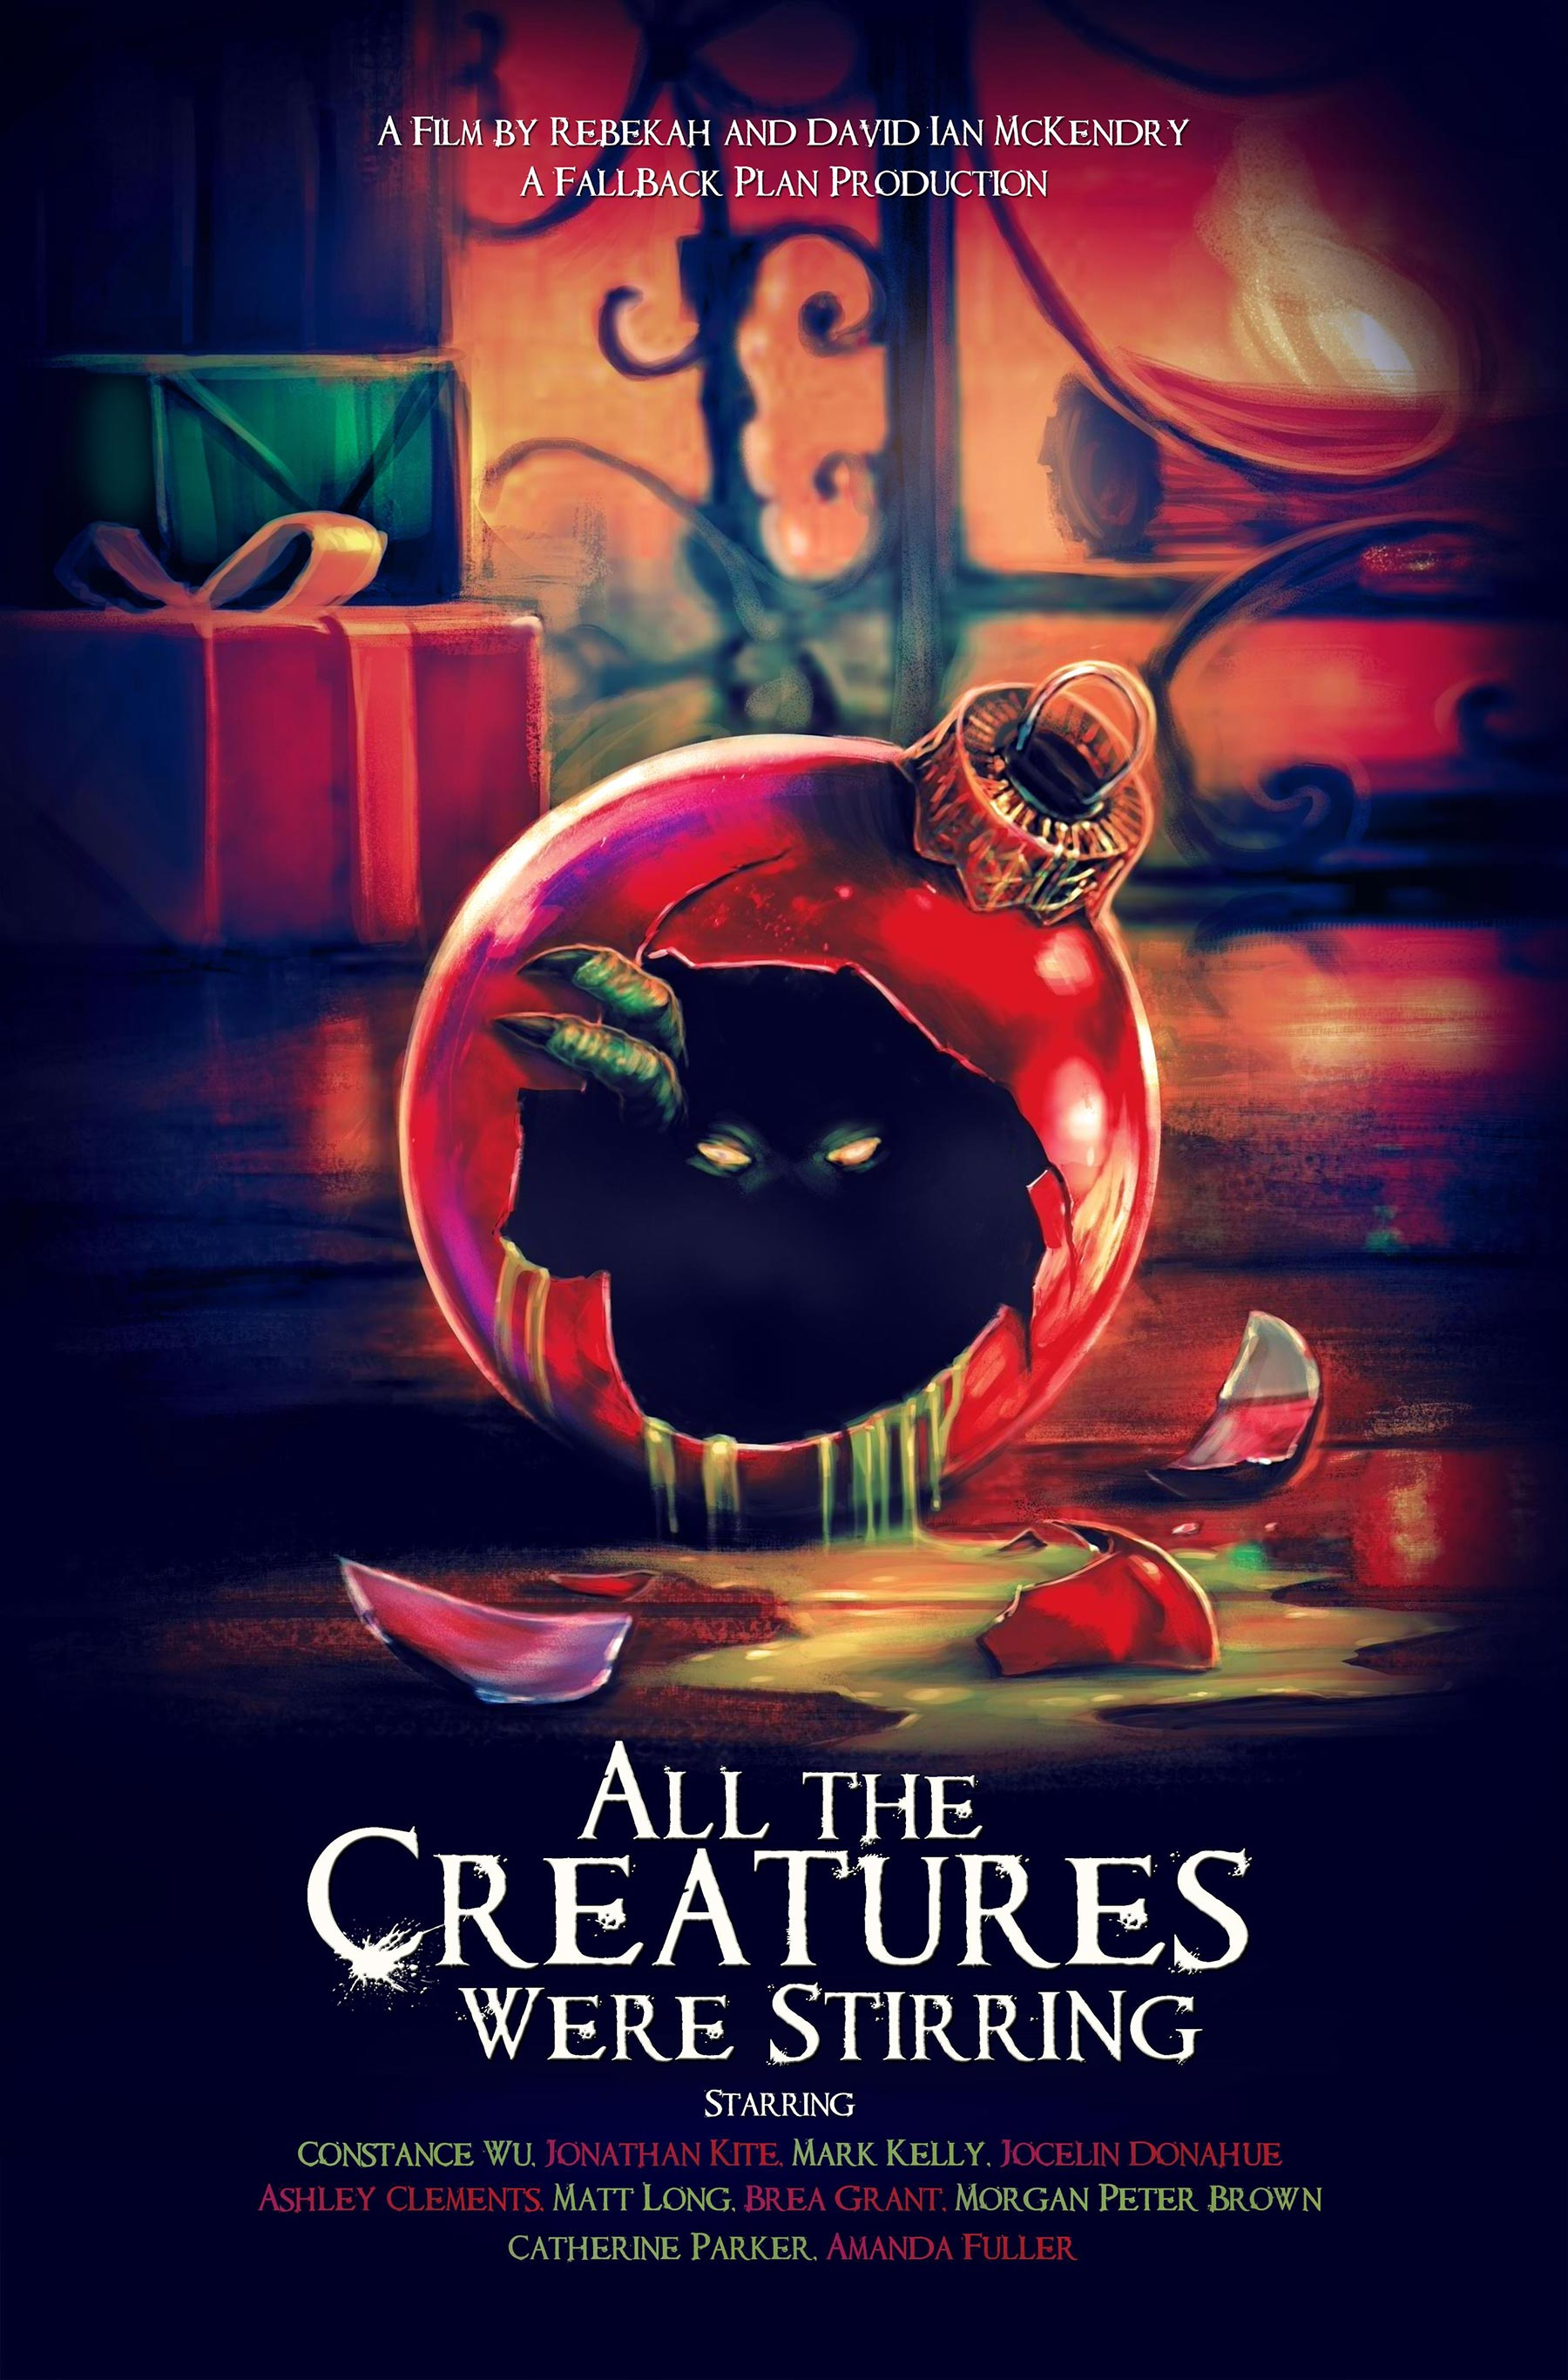 All the creatures were stirring - In this holiday horror-comedy,  Jenna (Ashley Clements) finds herself on a very strange date on Christmas Eve. Also starring Constance Wu, Jonathan Kite, and Amanda Fuller.